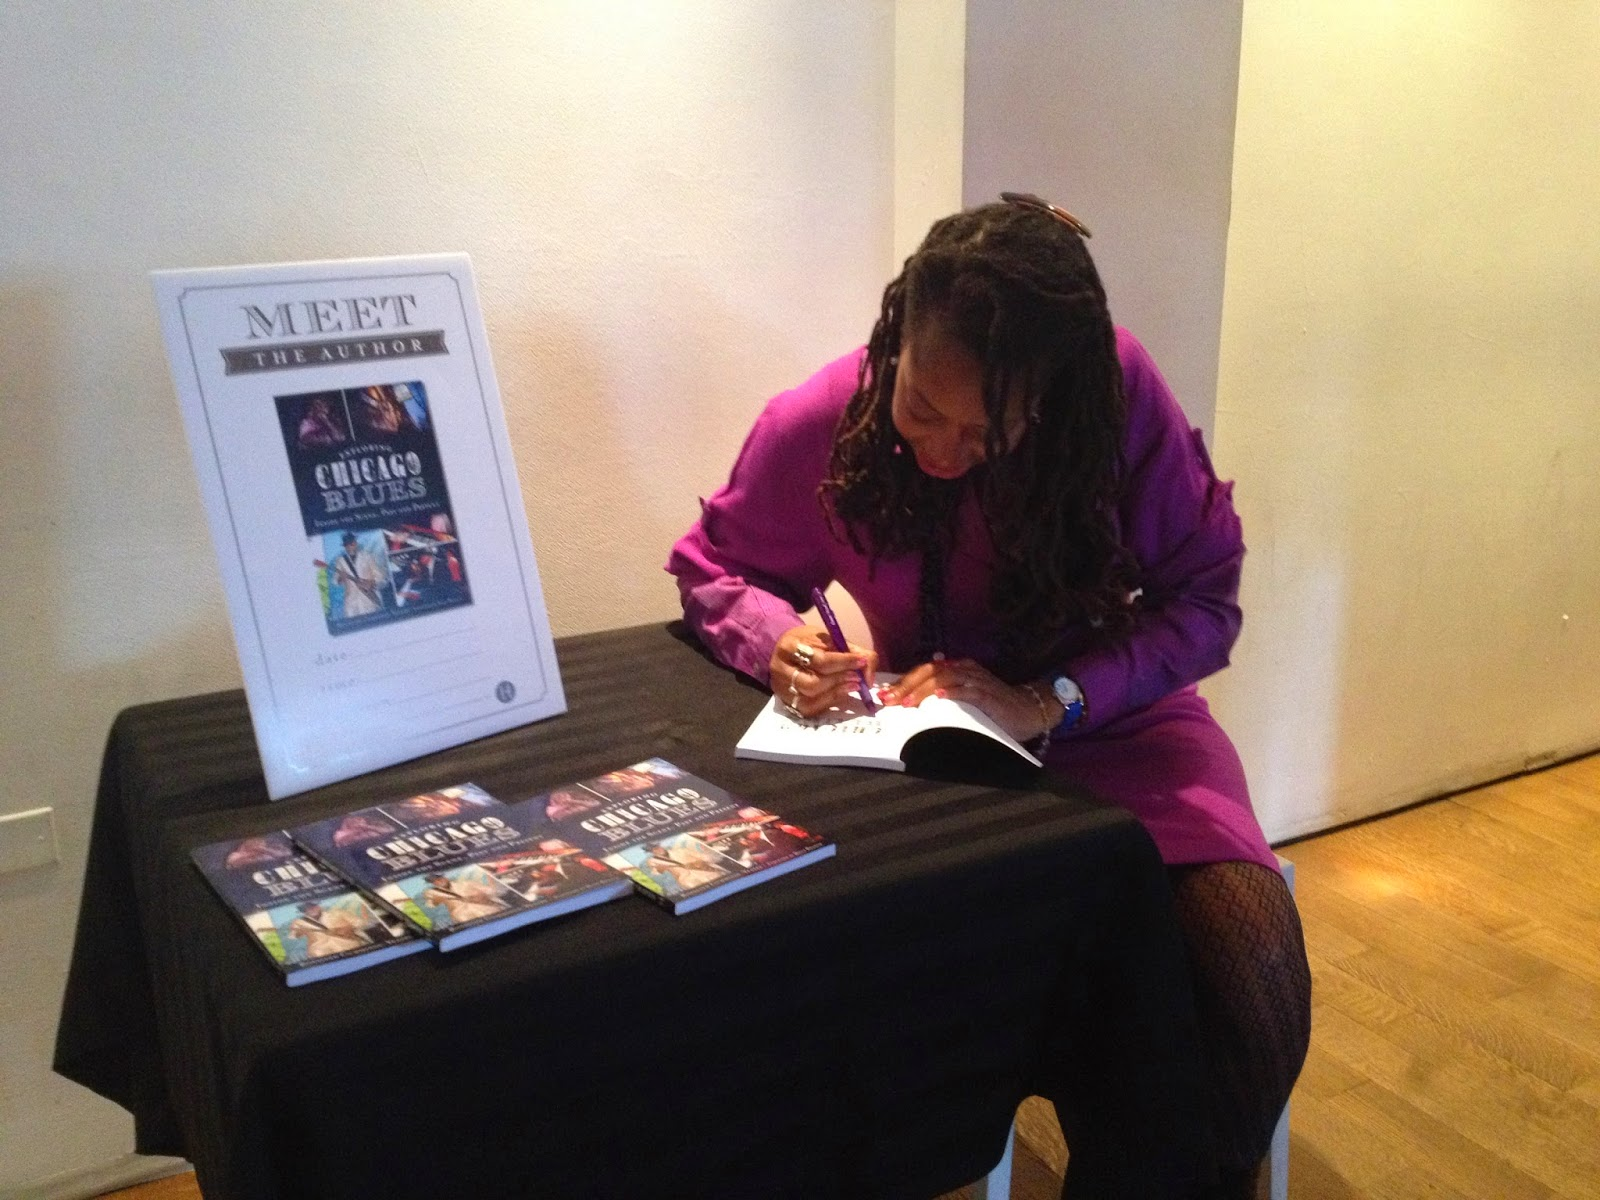 Rosalind Cummings Yeates Autographing her book Exploring Chicago Blues